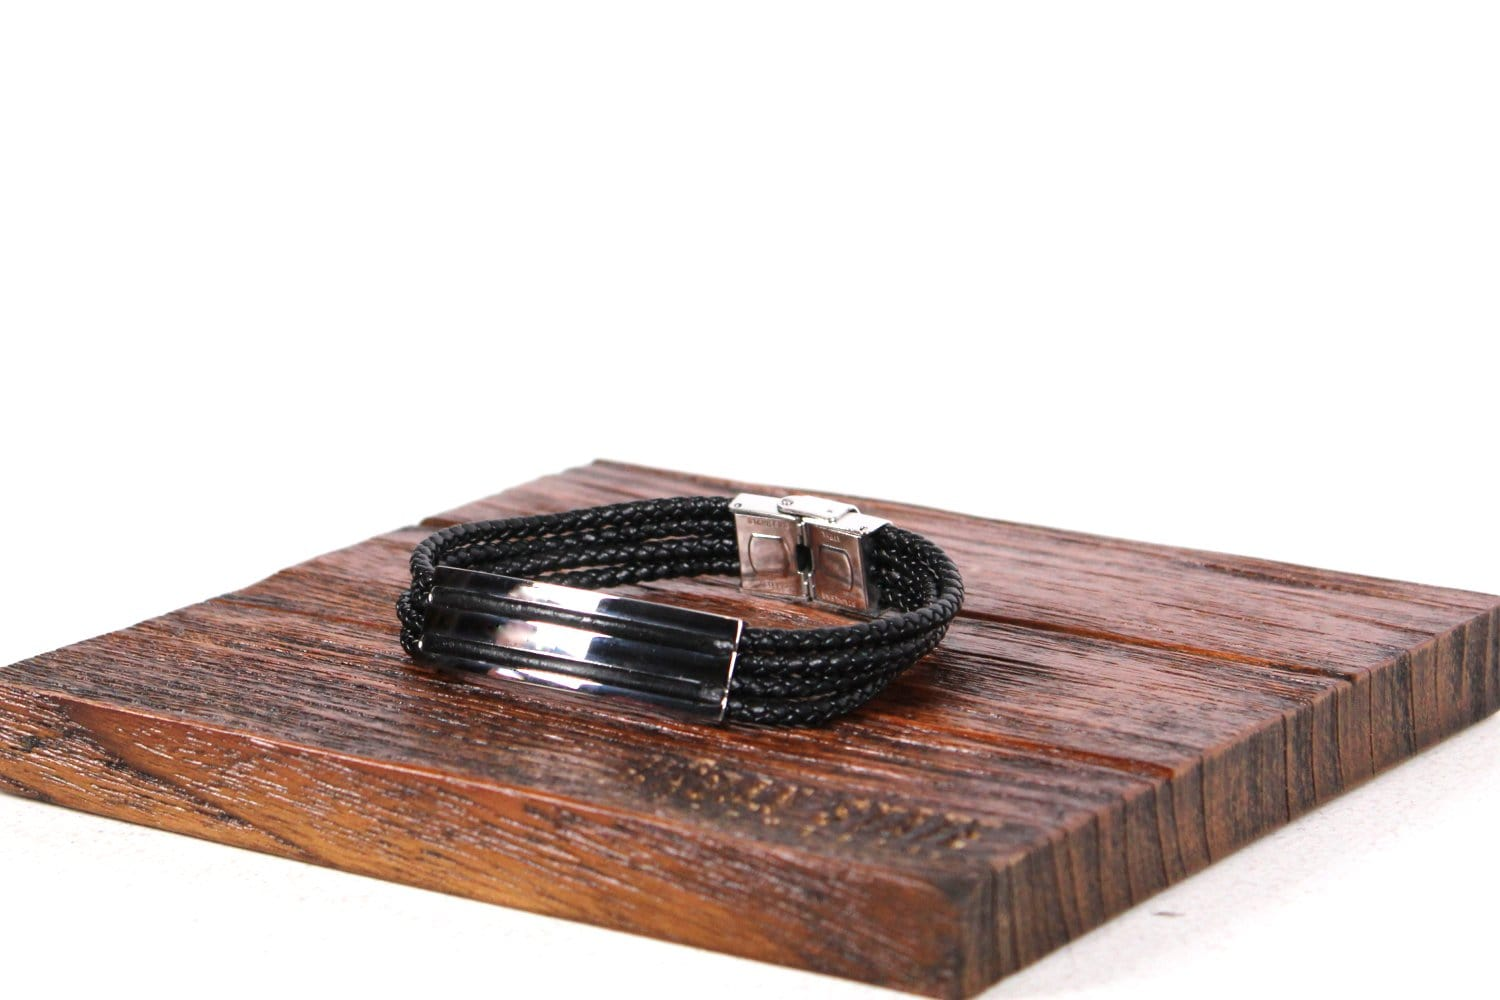 Metal Segment Braided Leather Bracelet - Black Bracelets - Urban State Indonesia